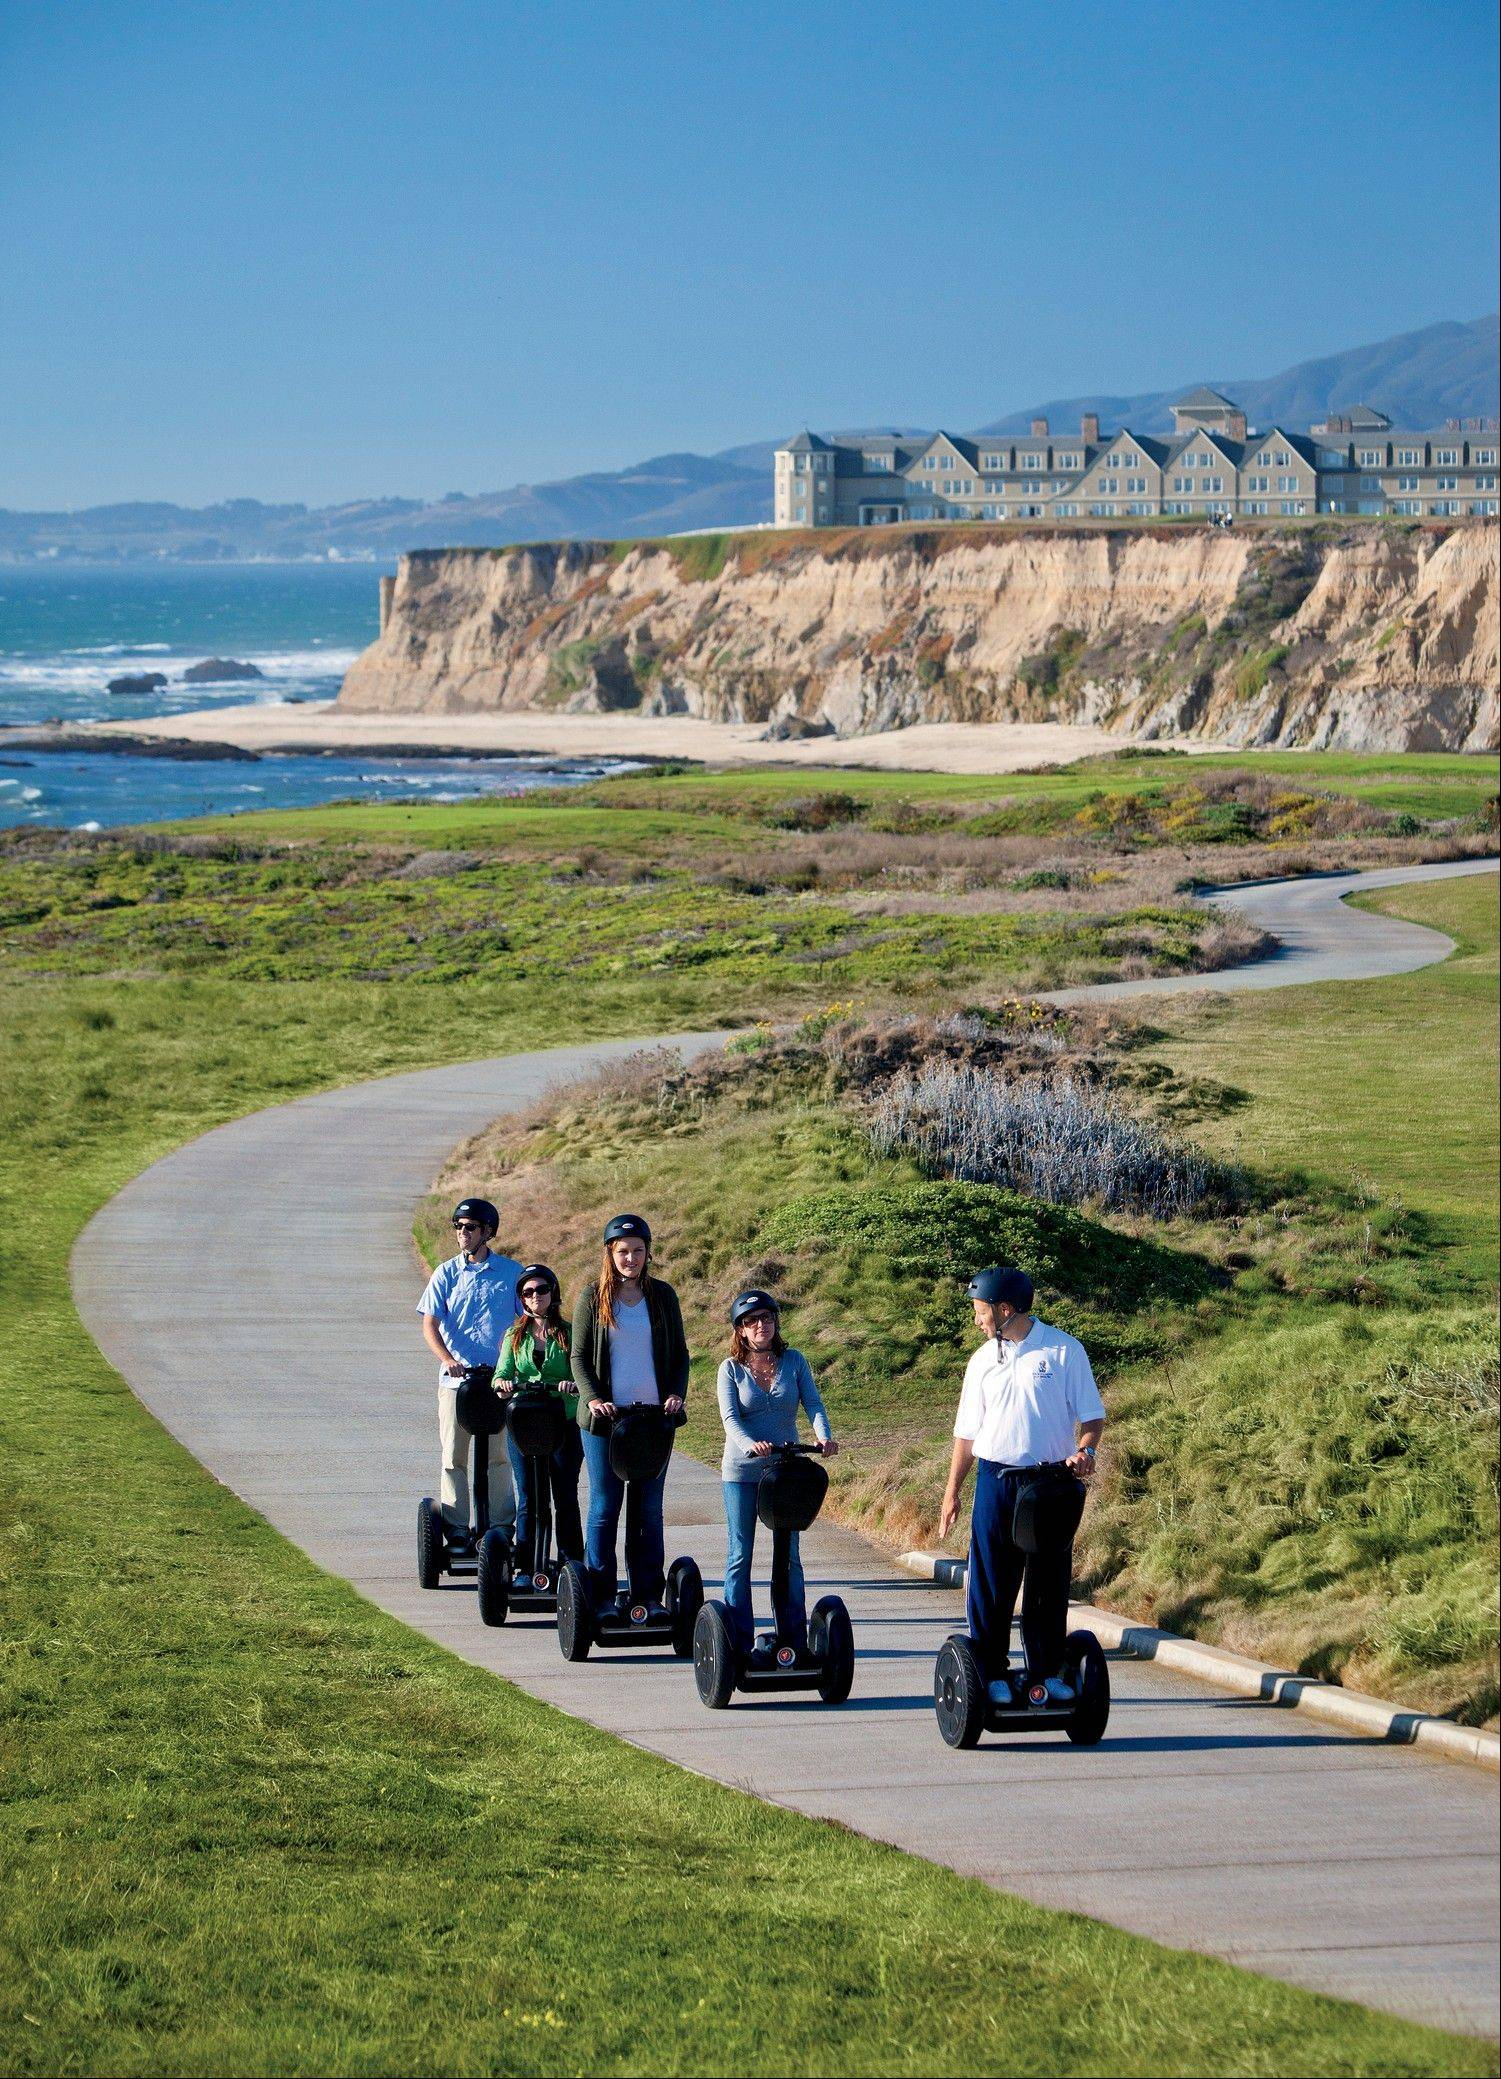 A hotel staff member leads a group of guests on a Segway tour of the Coastal Trail in Half-Moon Bay, Calif.